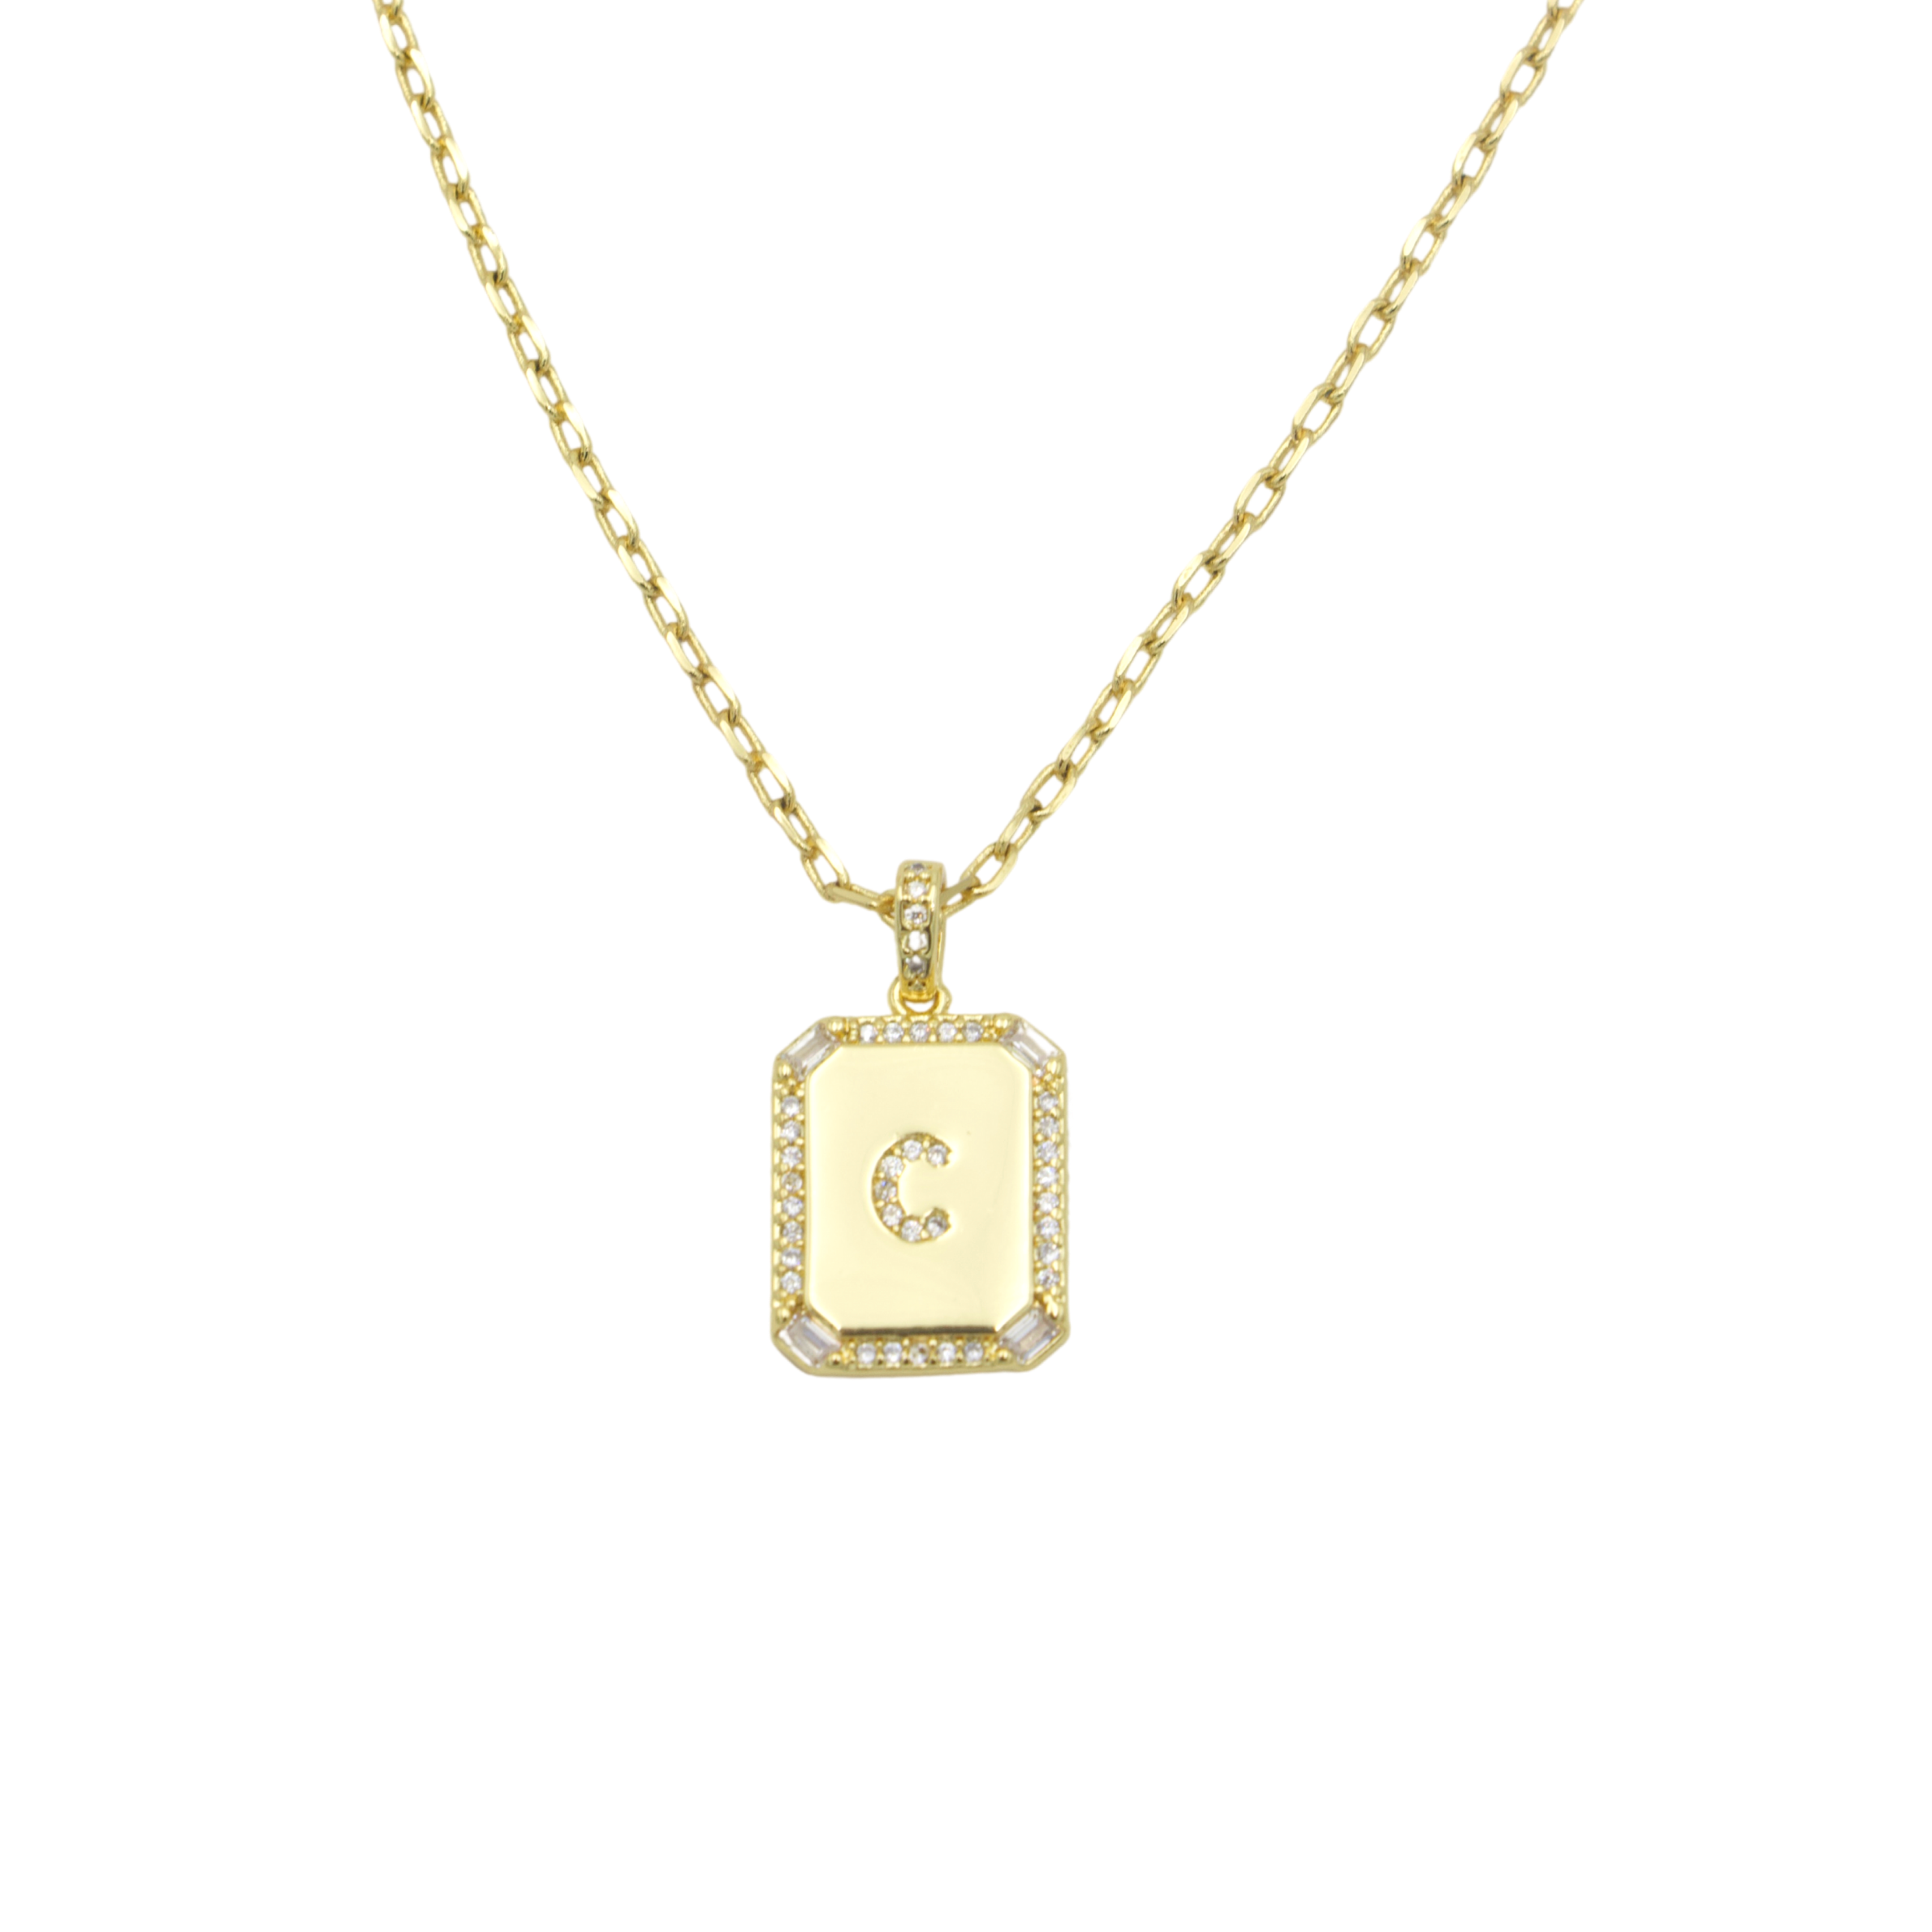 AW Boutique's gold filled 16 inch cable chain necklace finished with a dainty initial pendant with cubic zirconia detail. C initial shown.